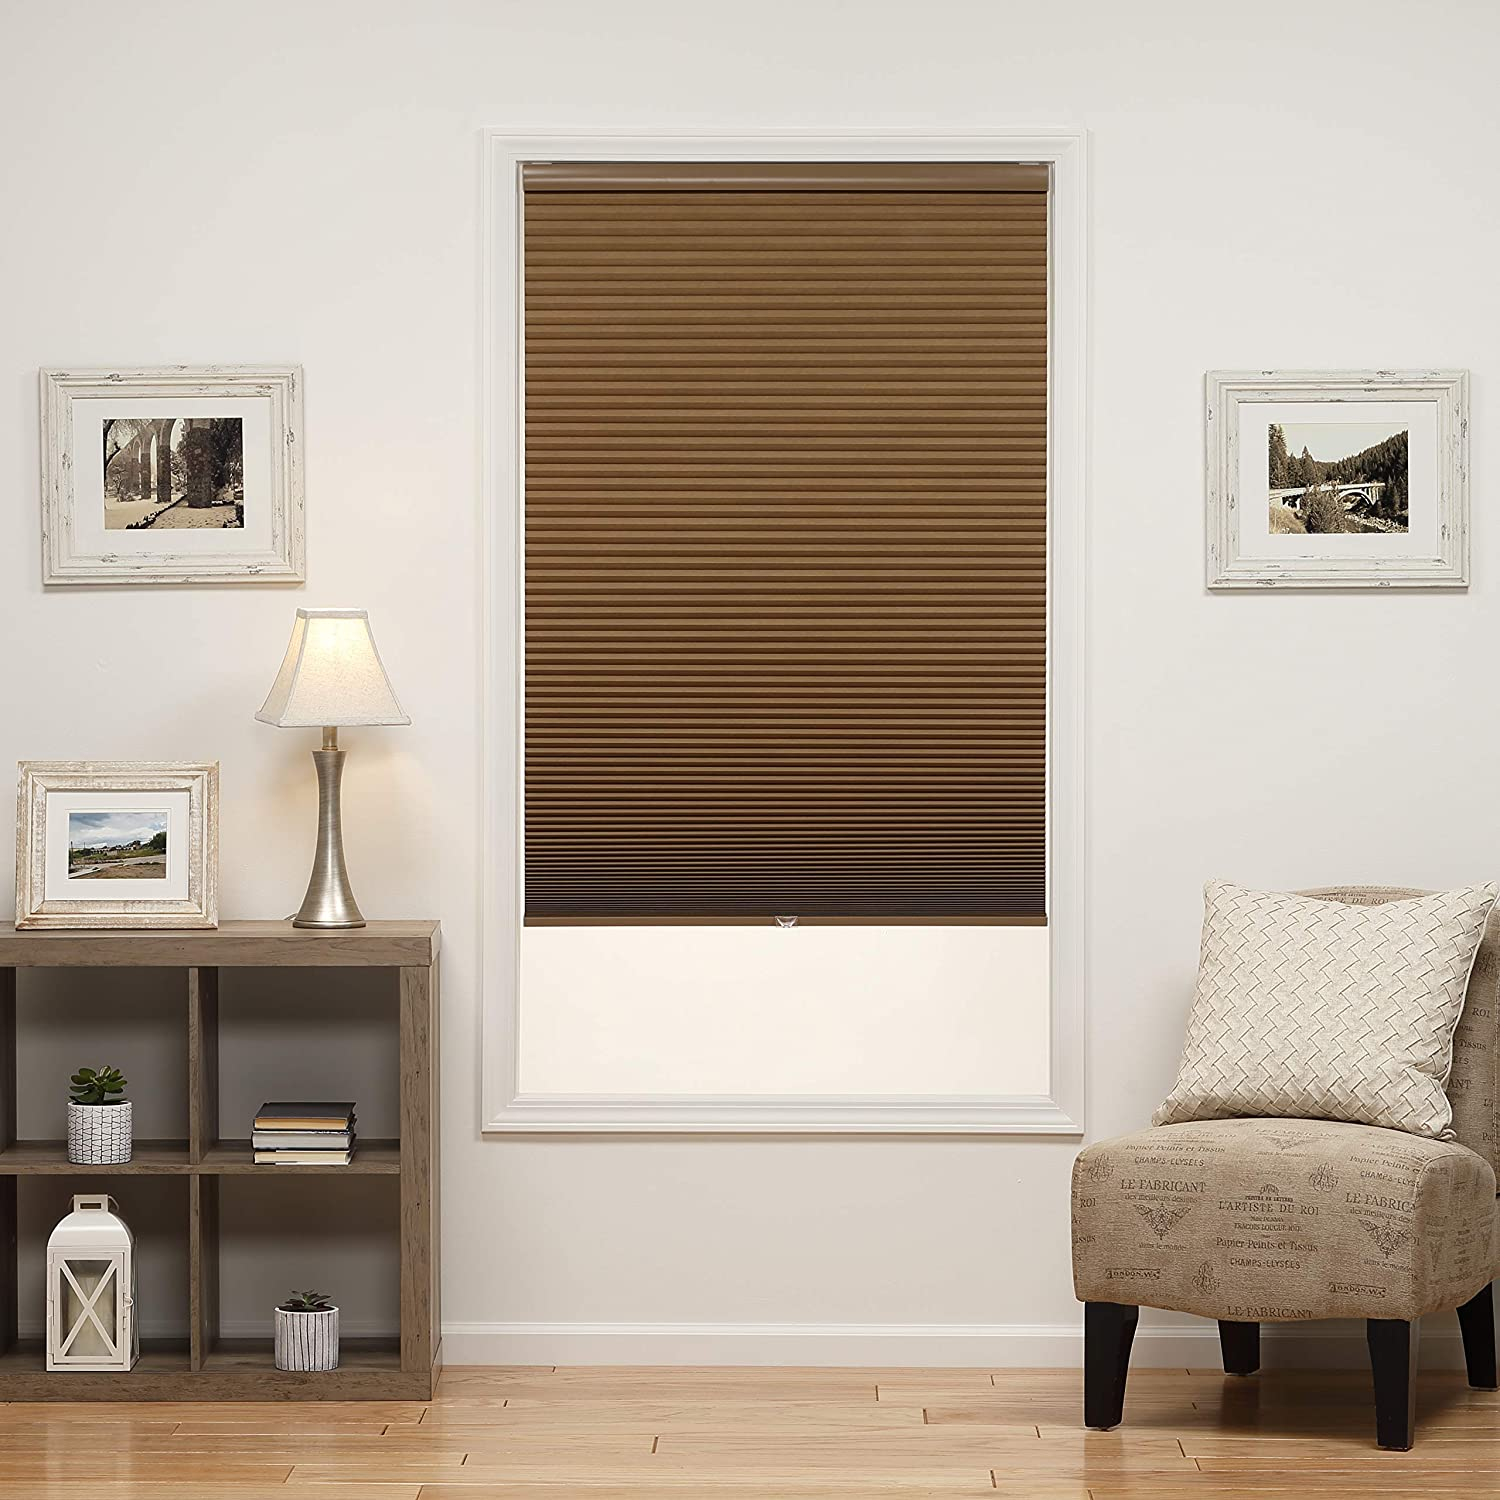 DEZ Furnishings QELTWT580640 Cordless Blackout Cellular Shade 58W x 64L Inches Latte